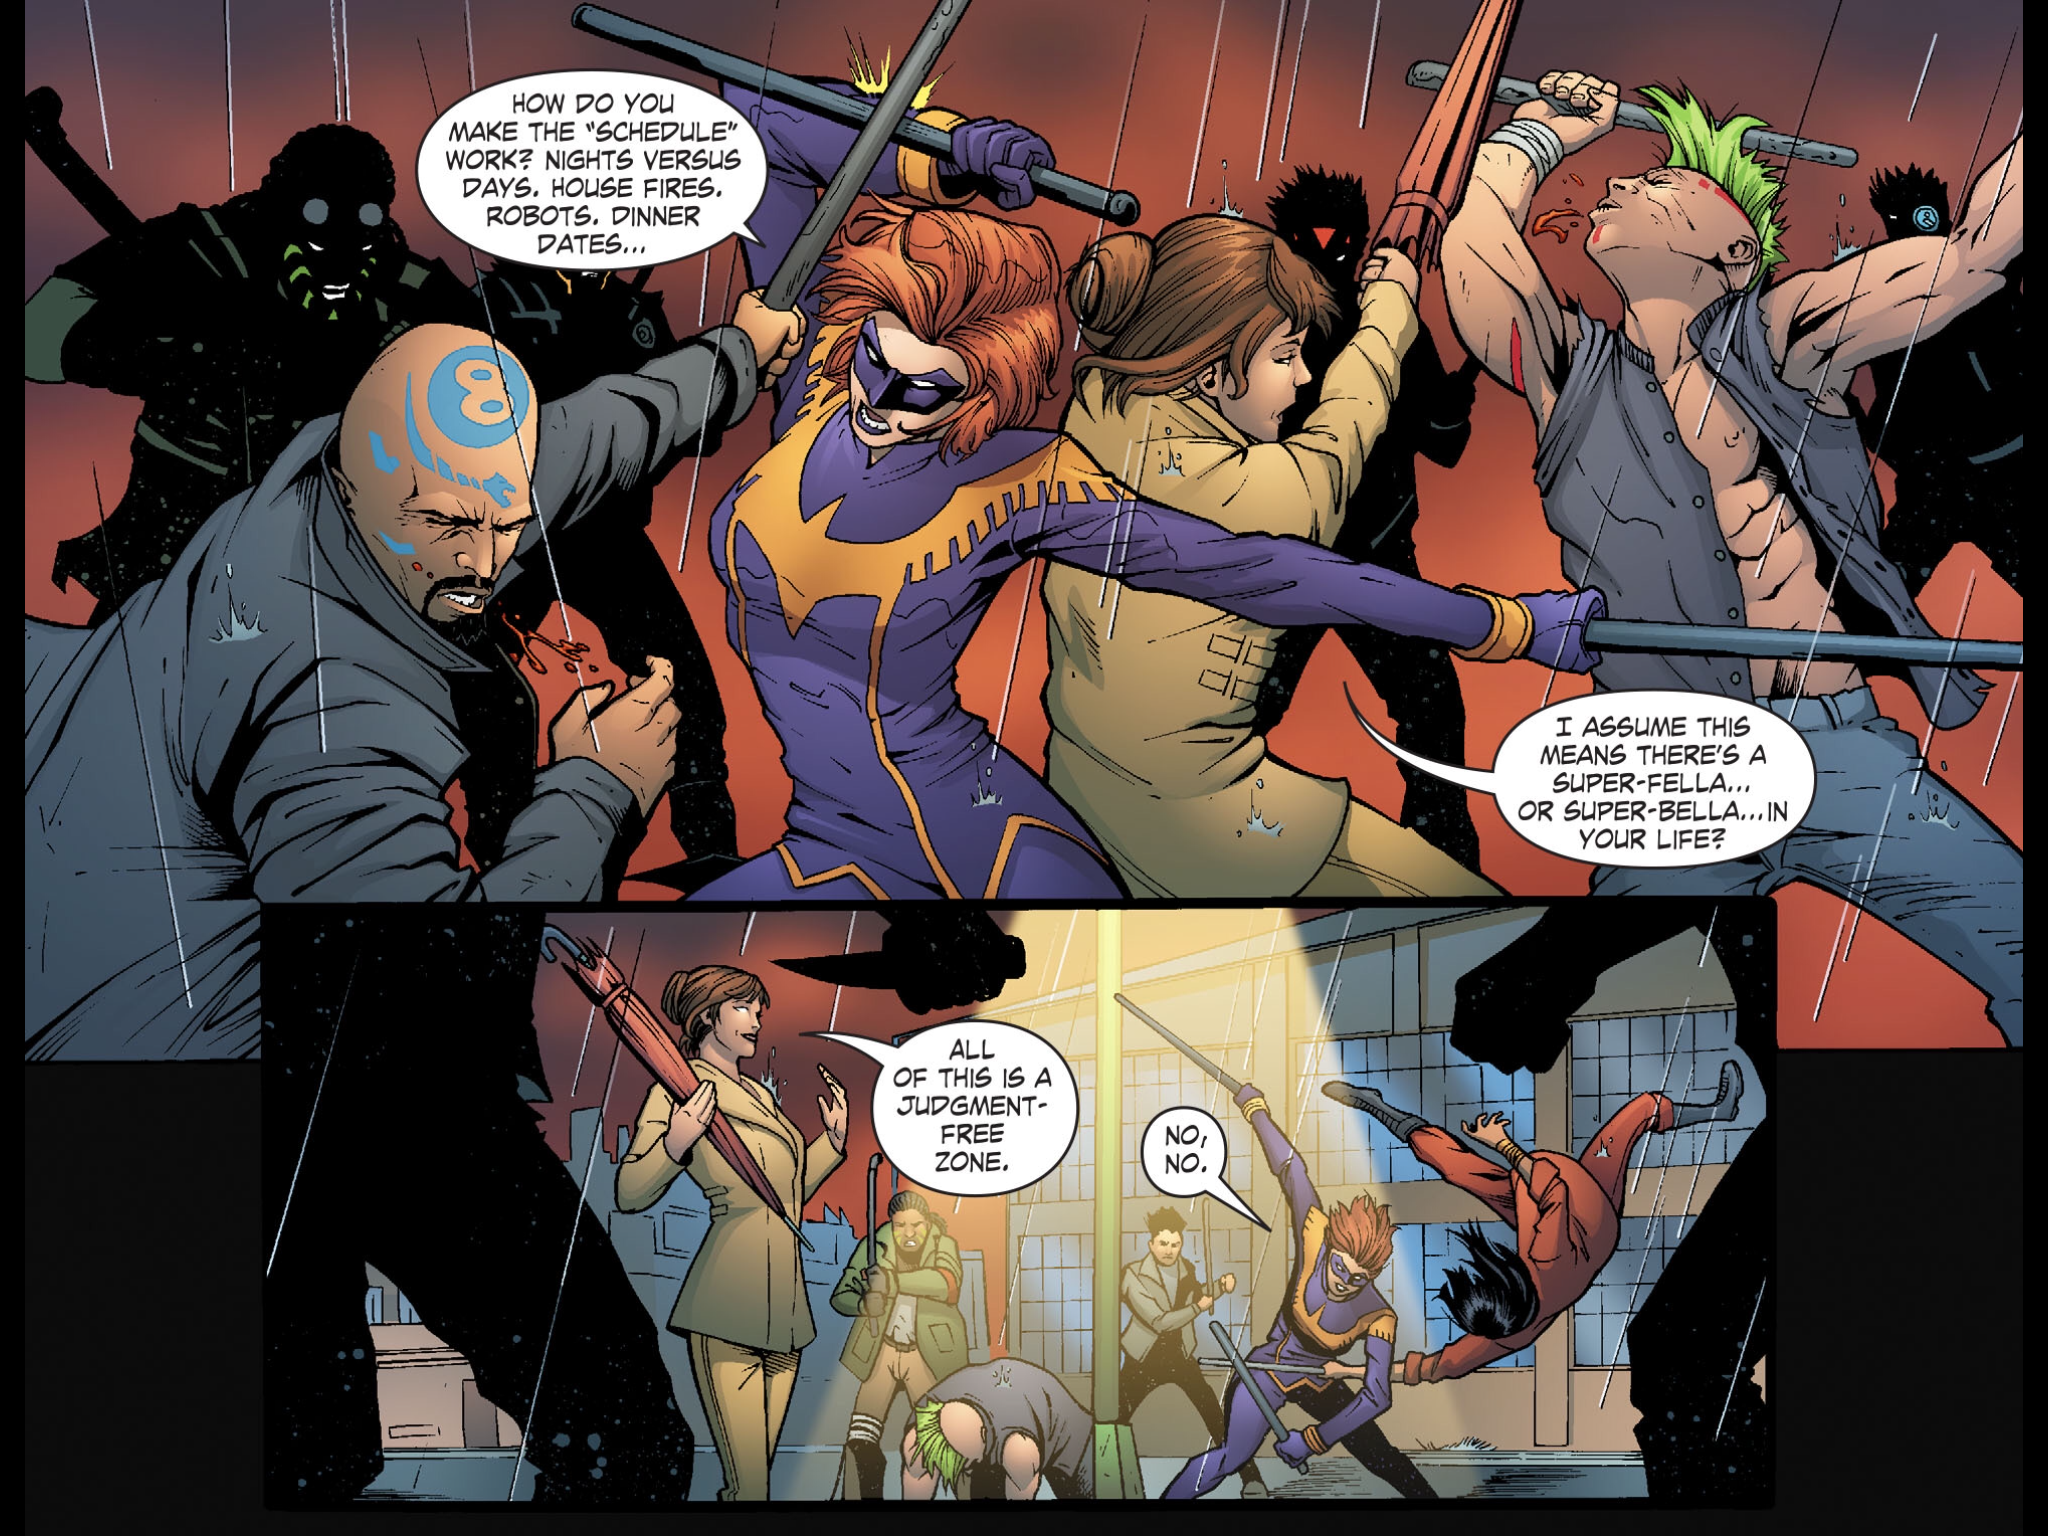 Lois And Nightwing Kicking Butt Pop Goes The World